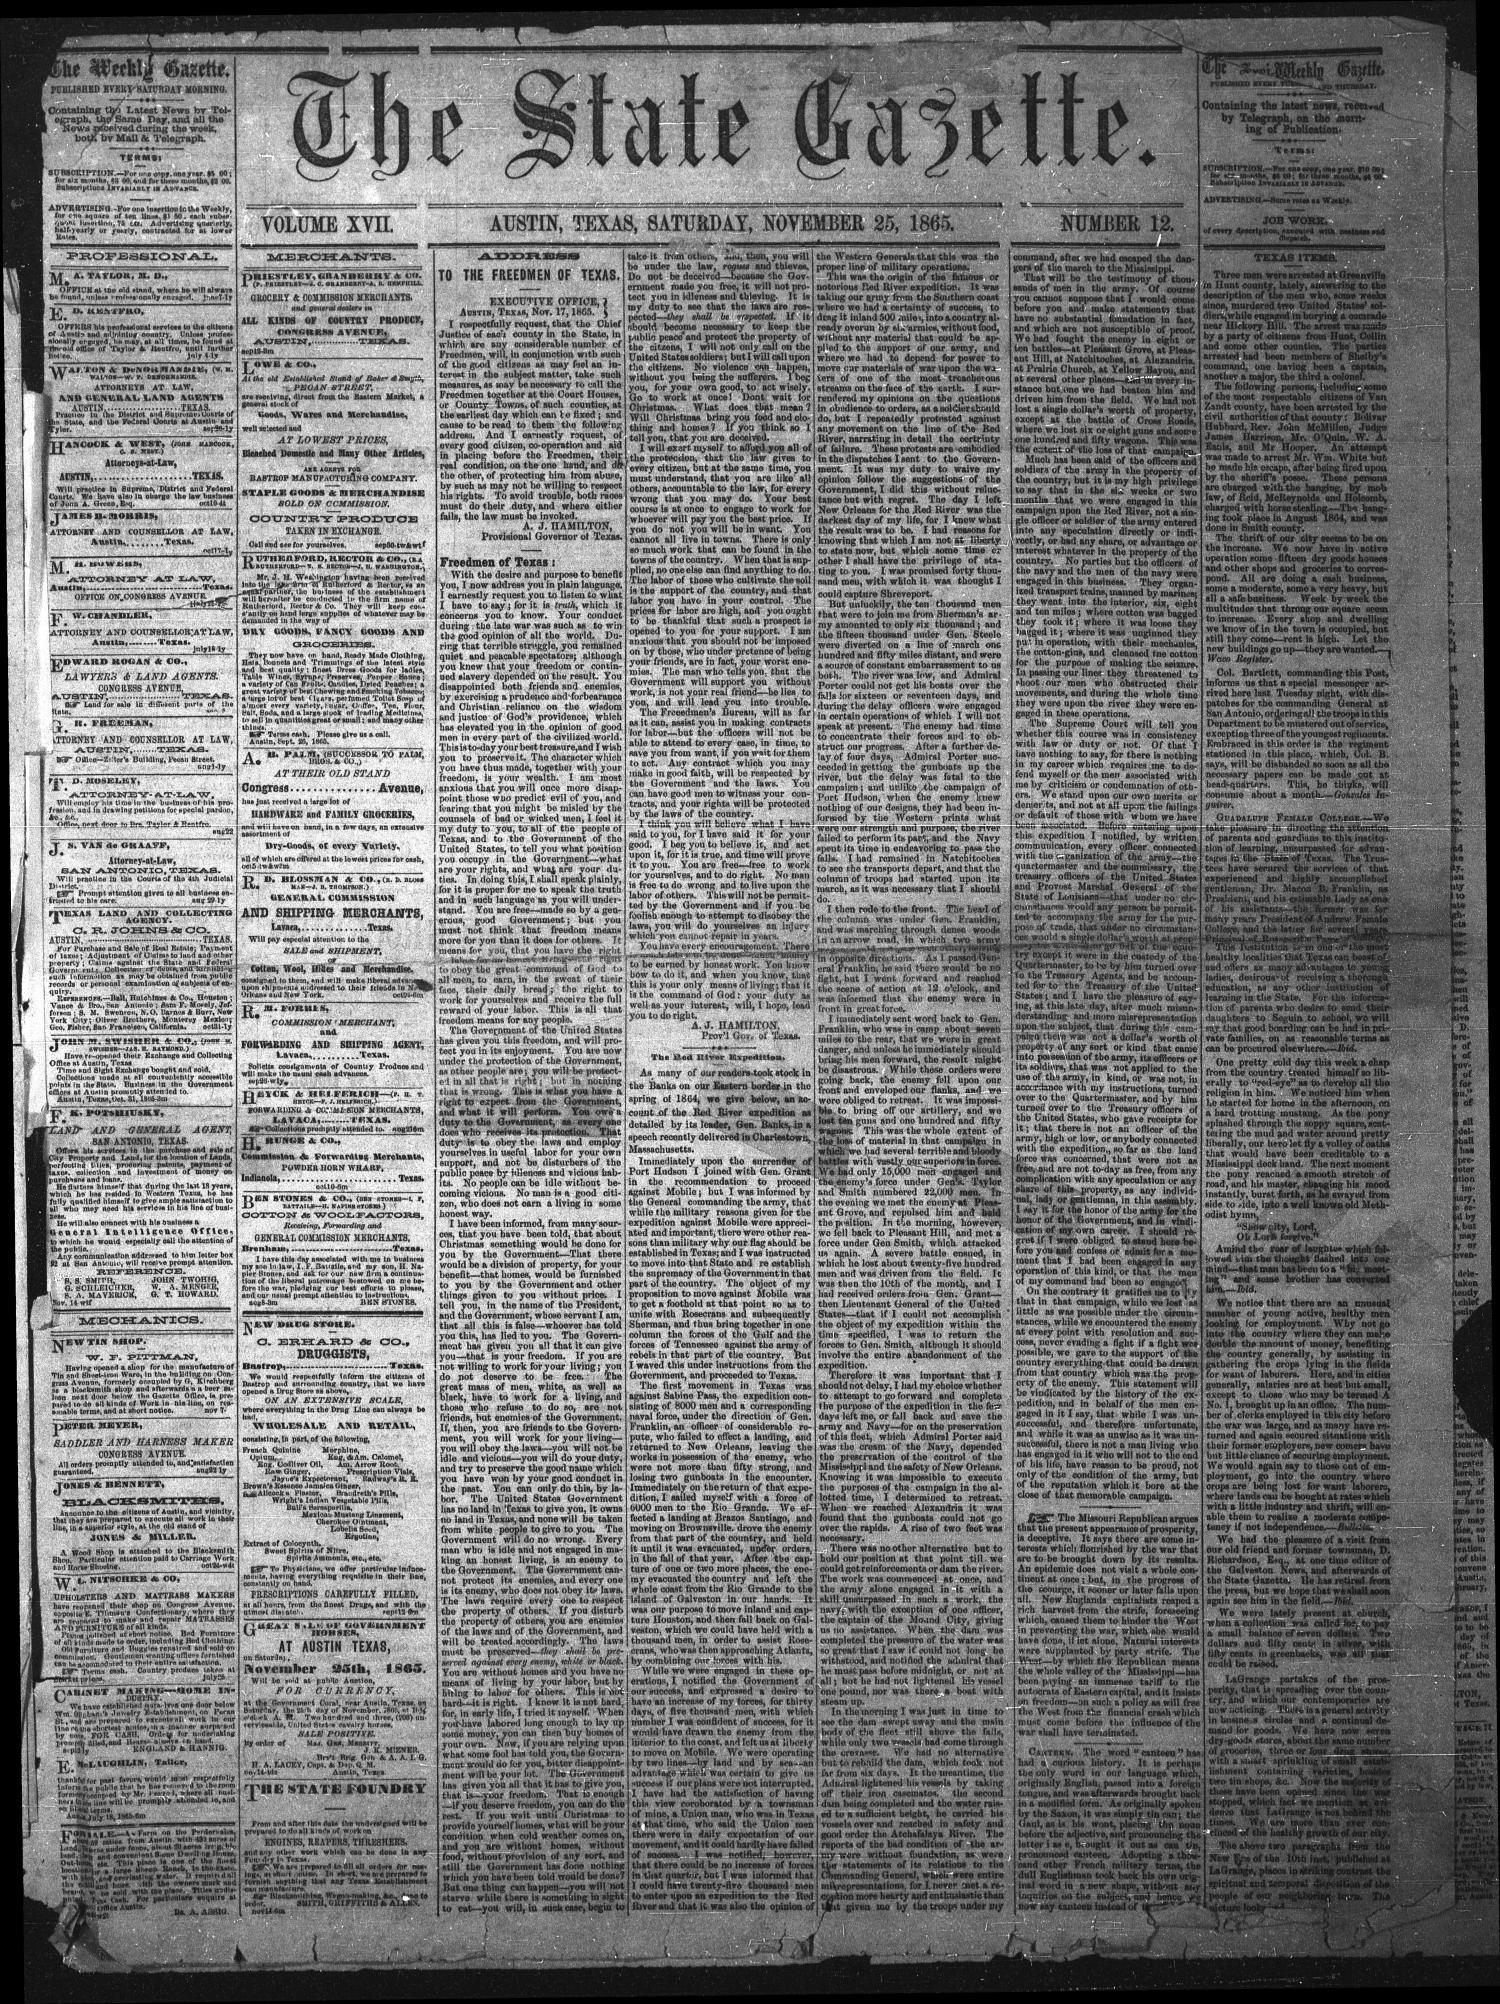 The State Gazette. (Austin, Tex.), Vol. 17, No. 12, Ed. 1 Saturday, November 25, 1865                                                                                                      [Sequence #]: 1 of 4